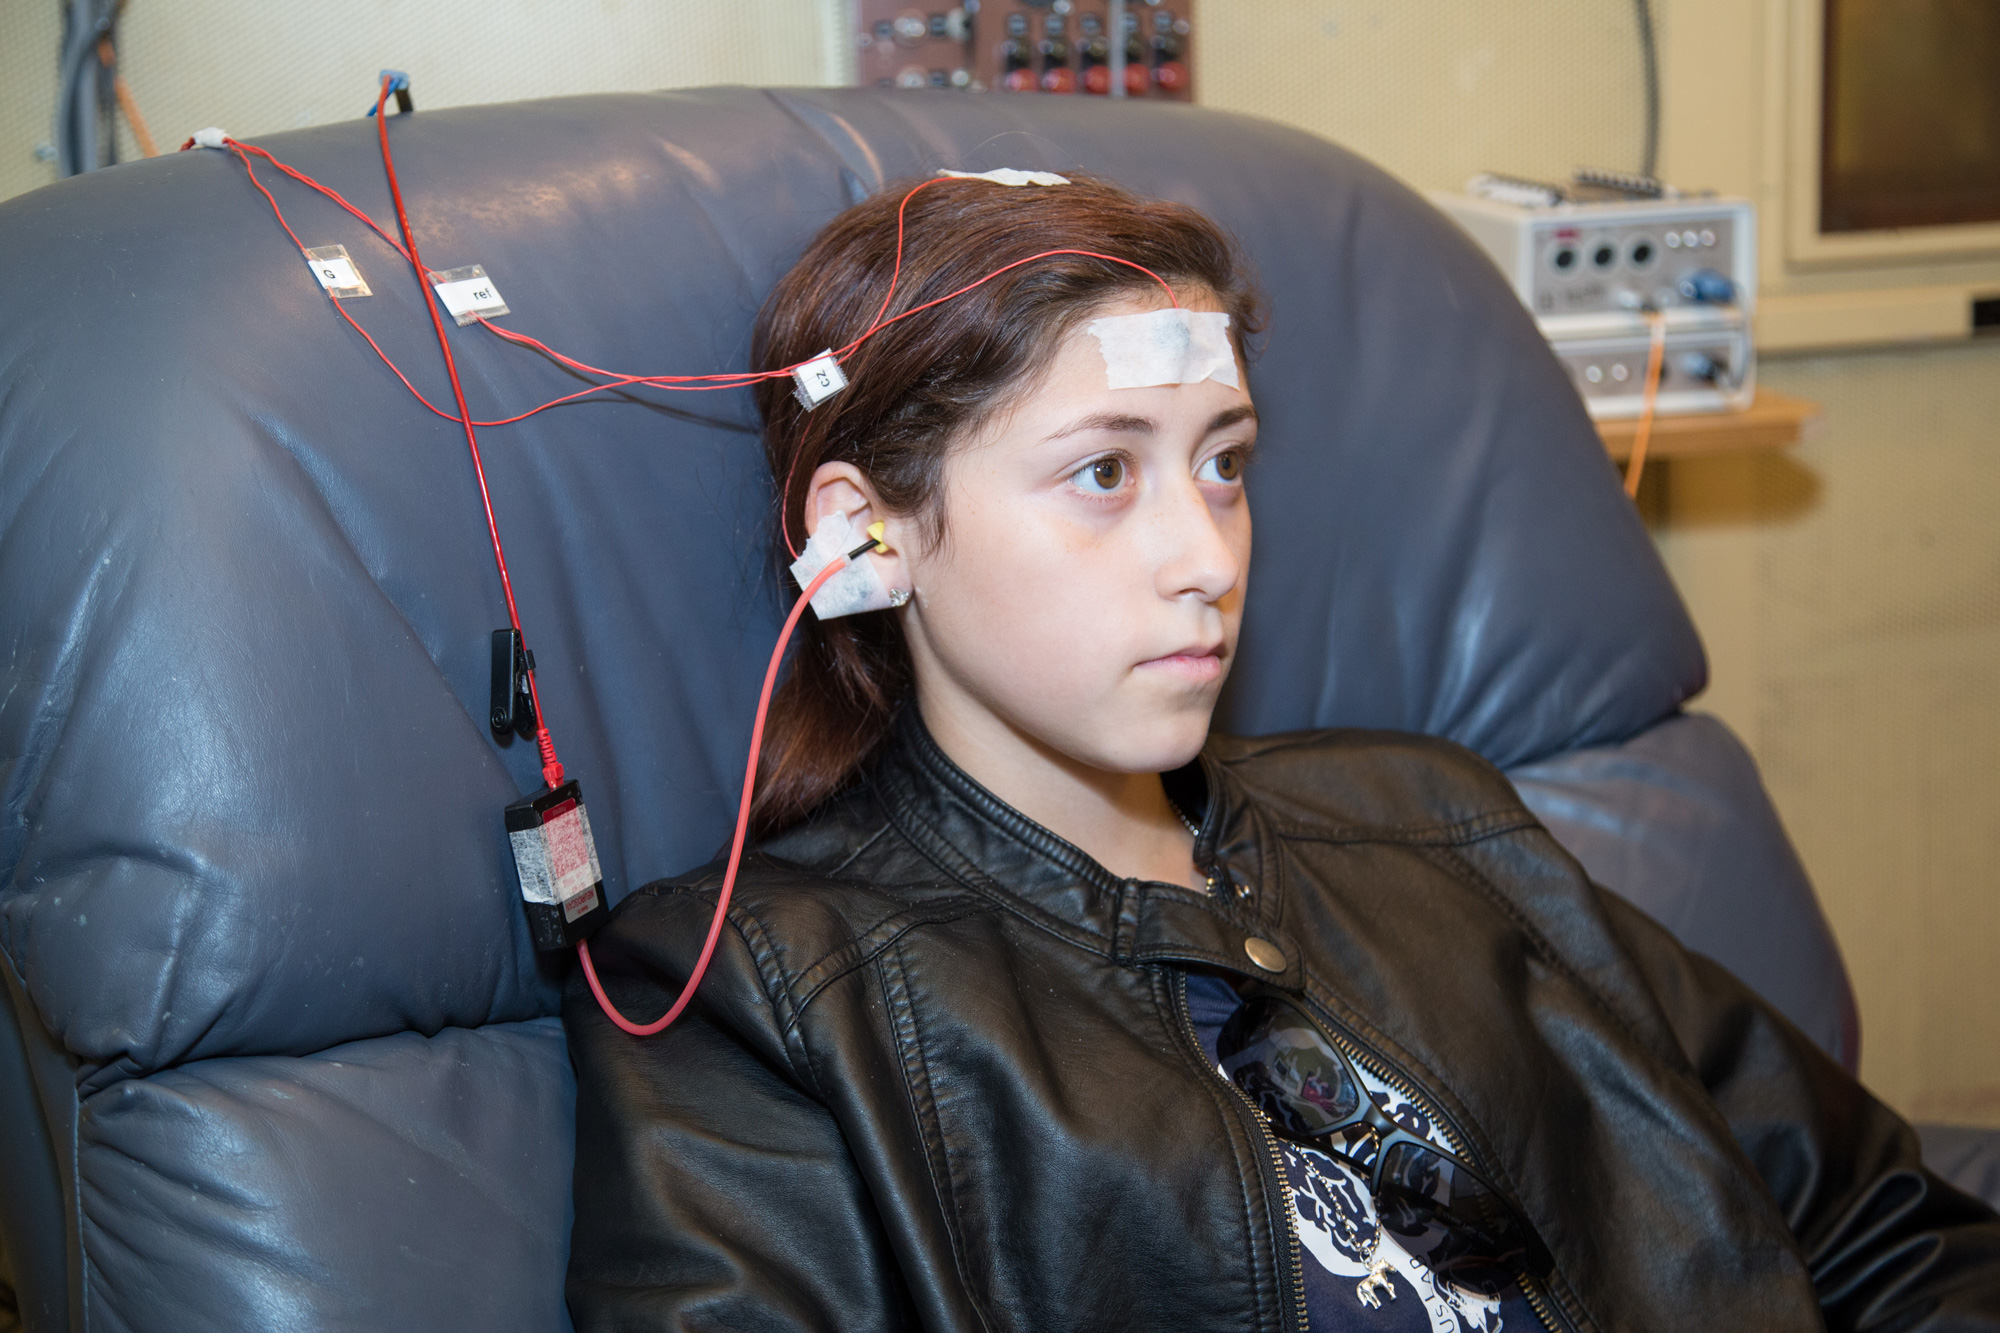 In a study at Northwestern University, a boy listens to a series of sounds while electrodes measure his brain activity to help diagnose a concussion.